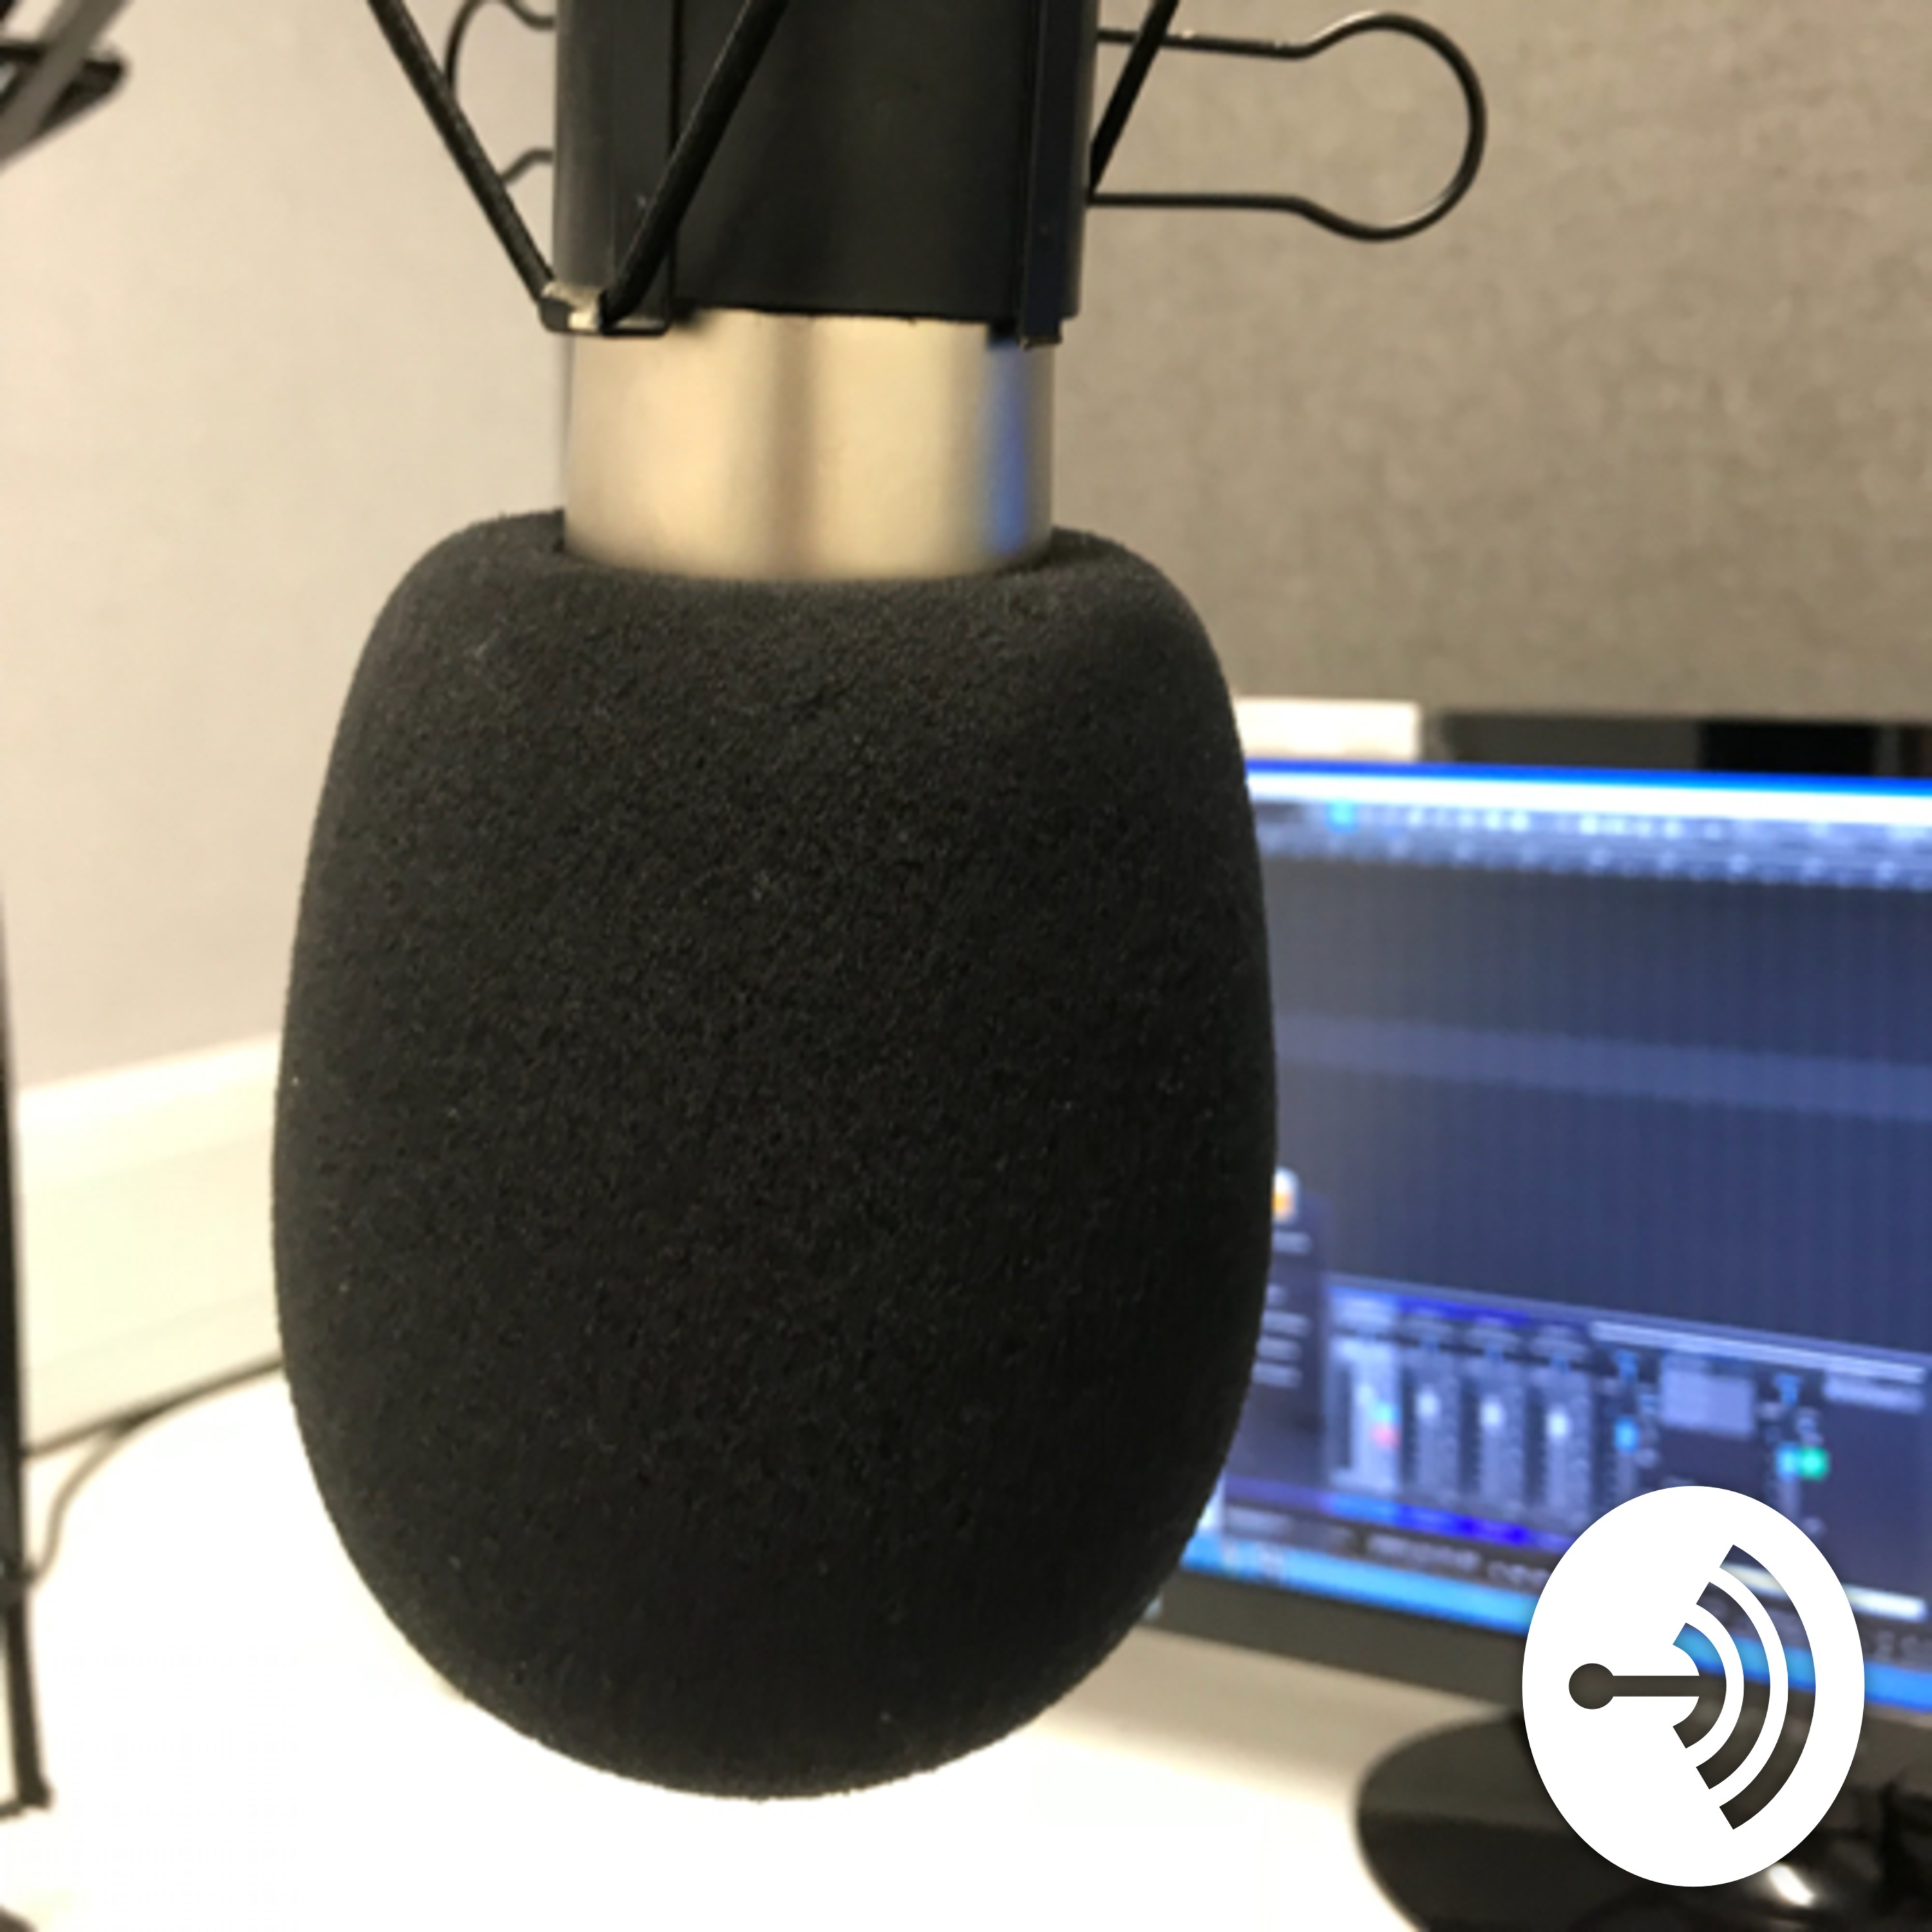 Audio is just as important as Video Podcast - Listen